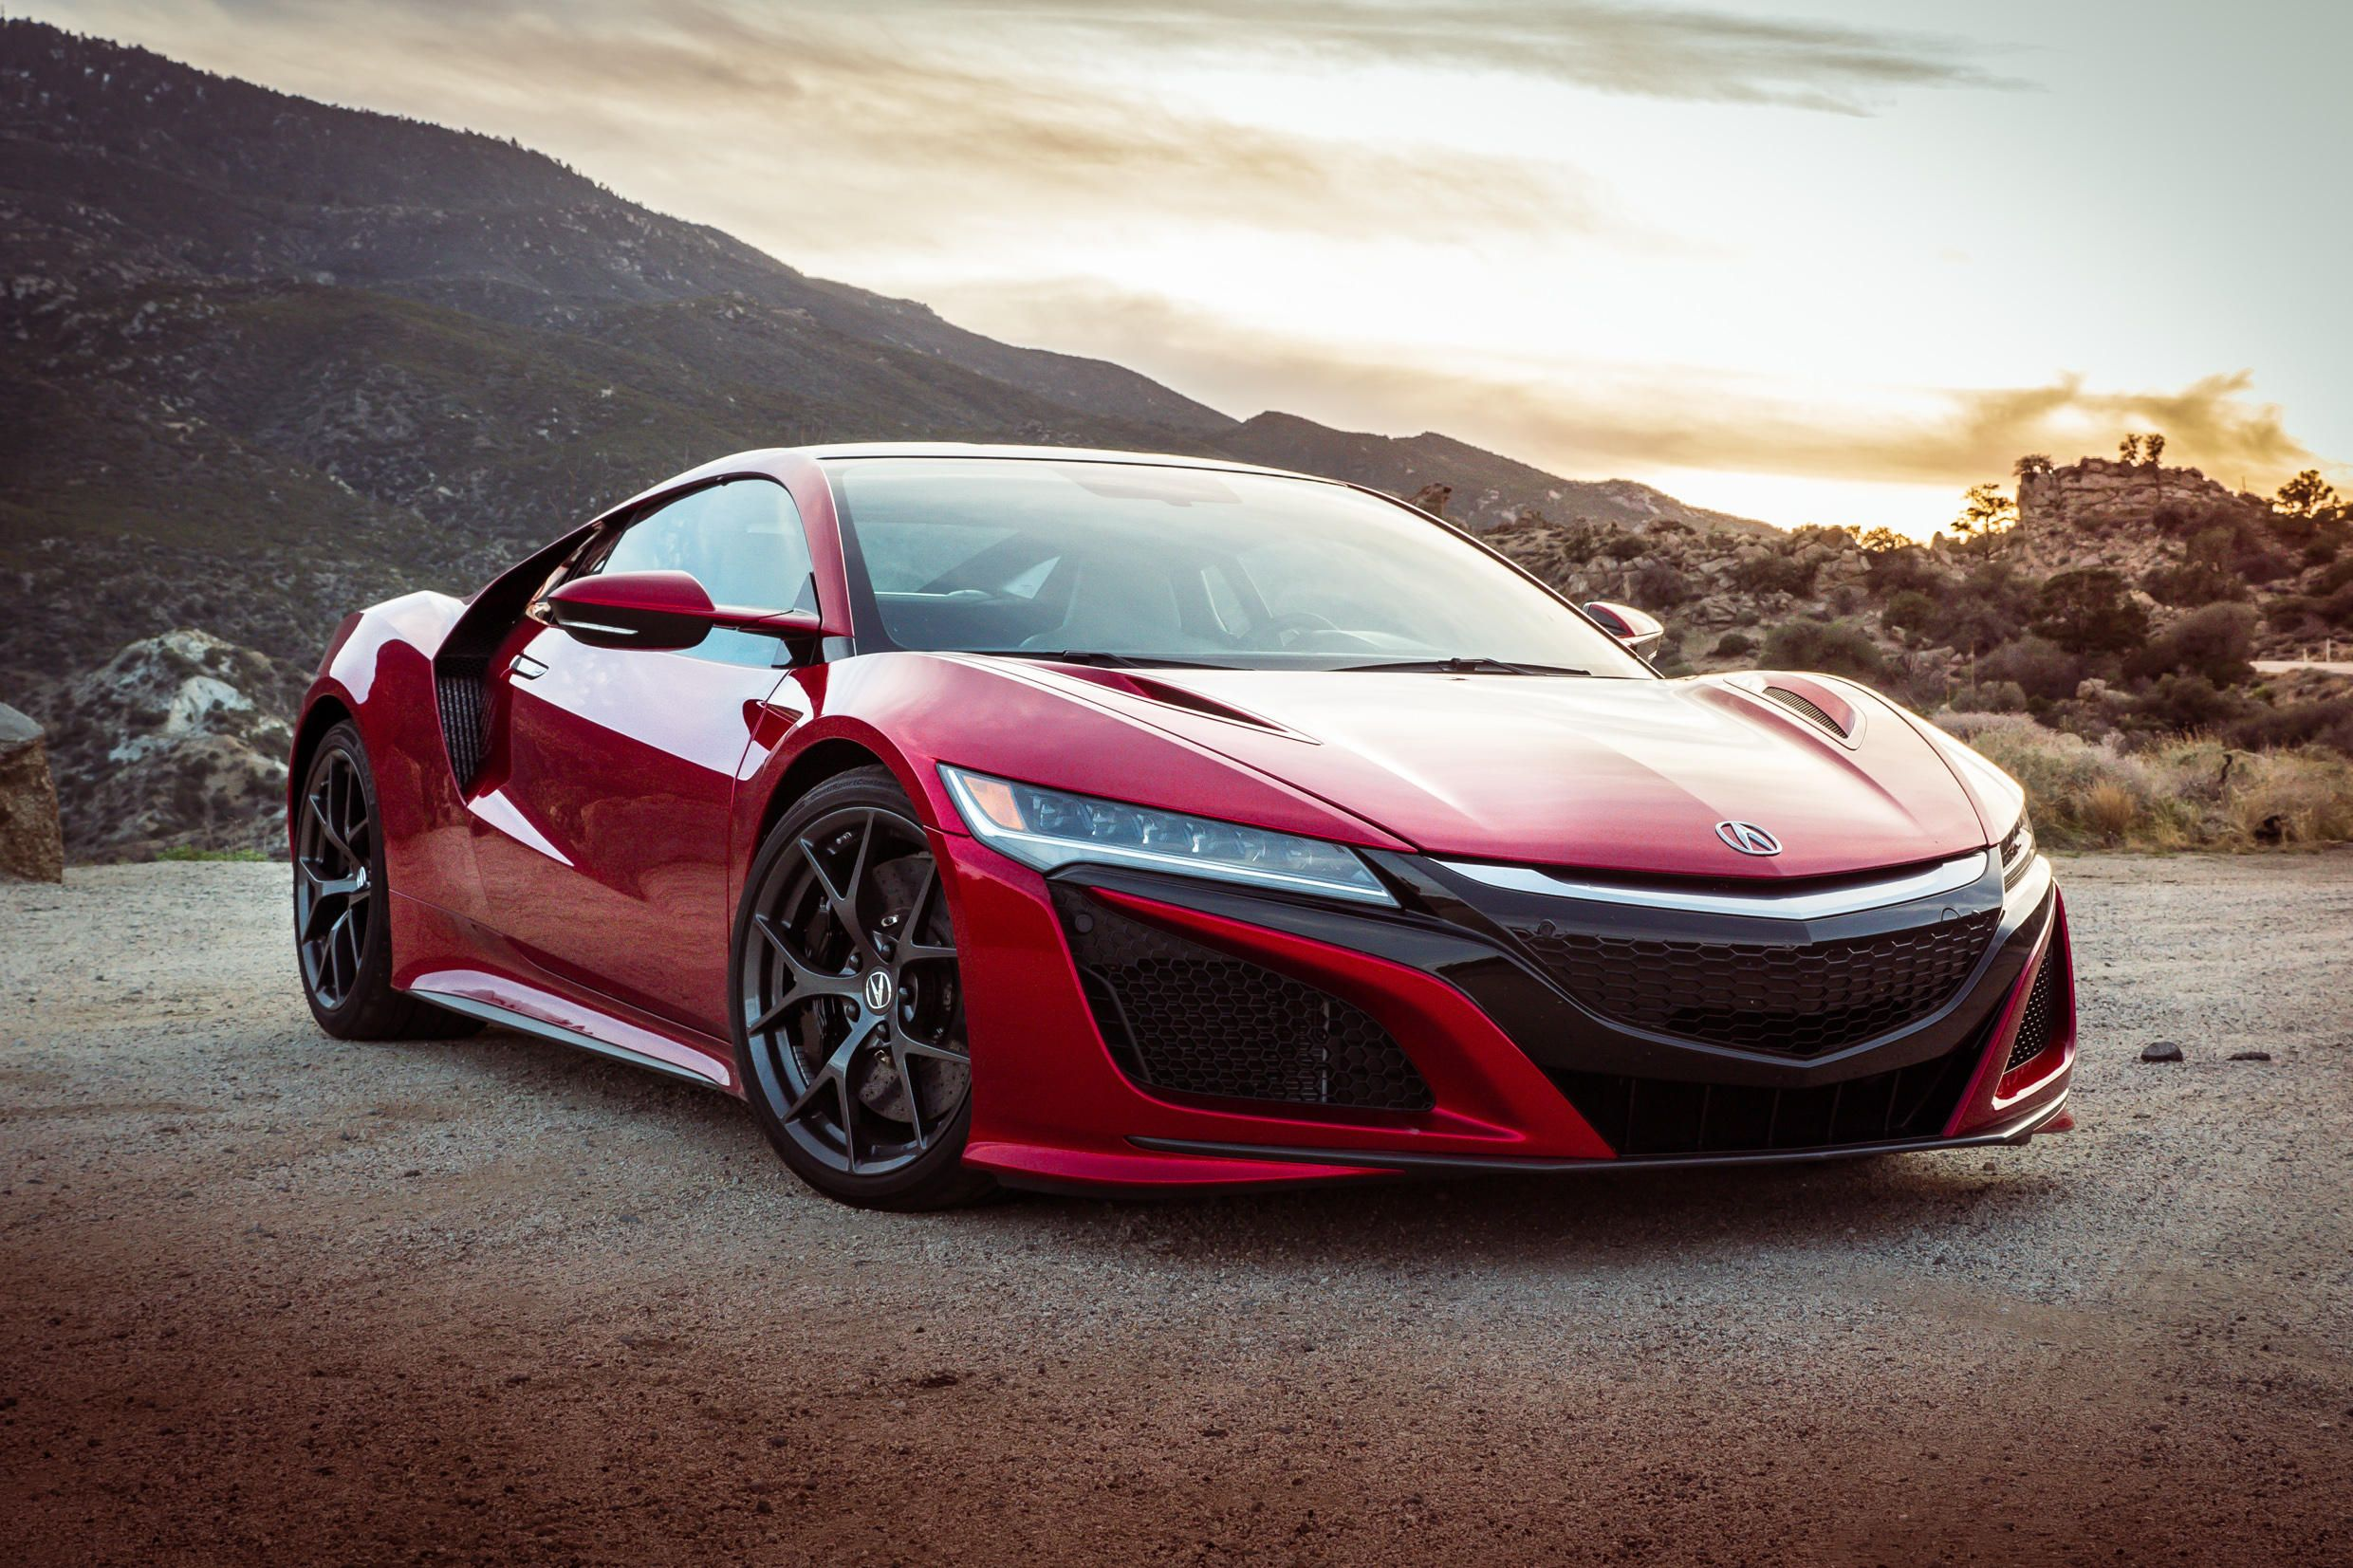 Acura NSX Wallpapers   Top Acura NSX Backgrounds 2480x1653